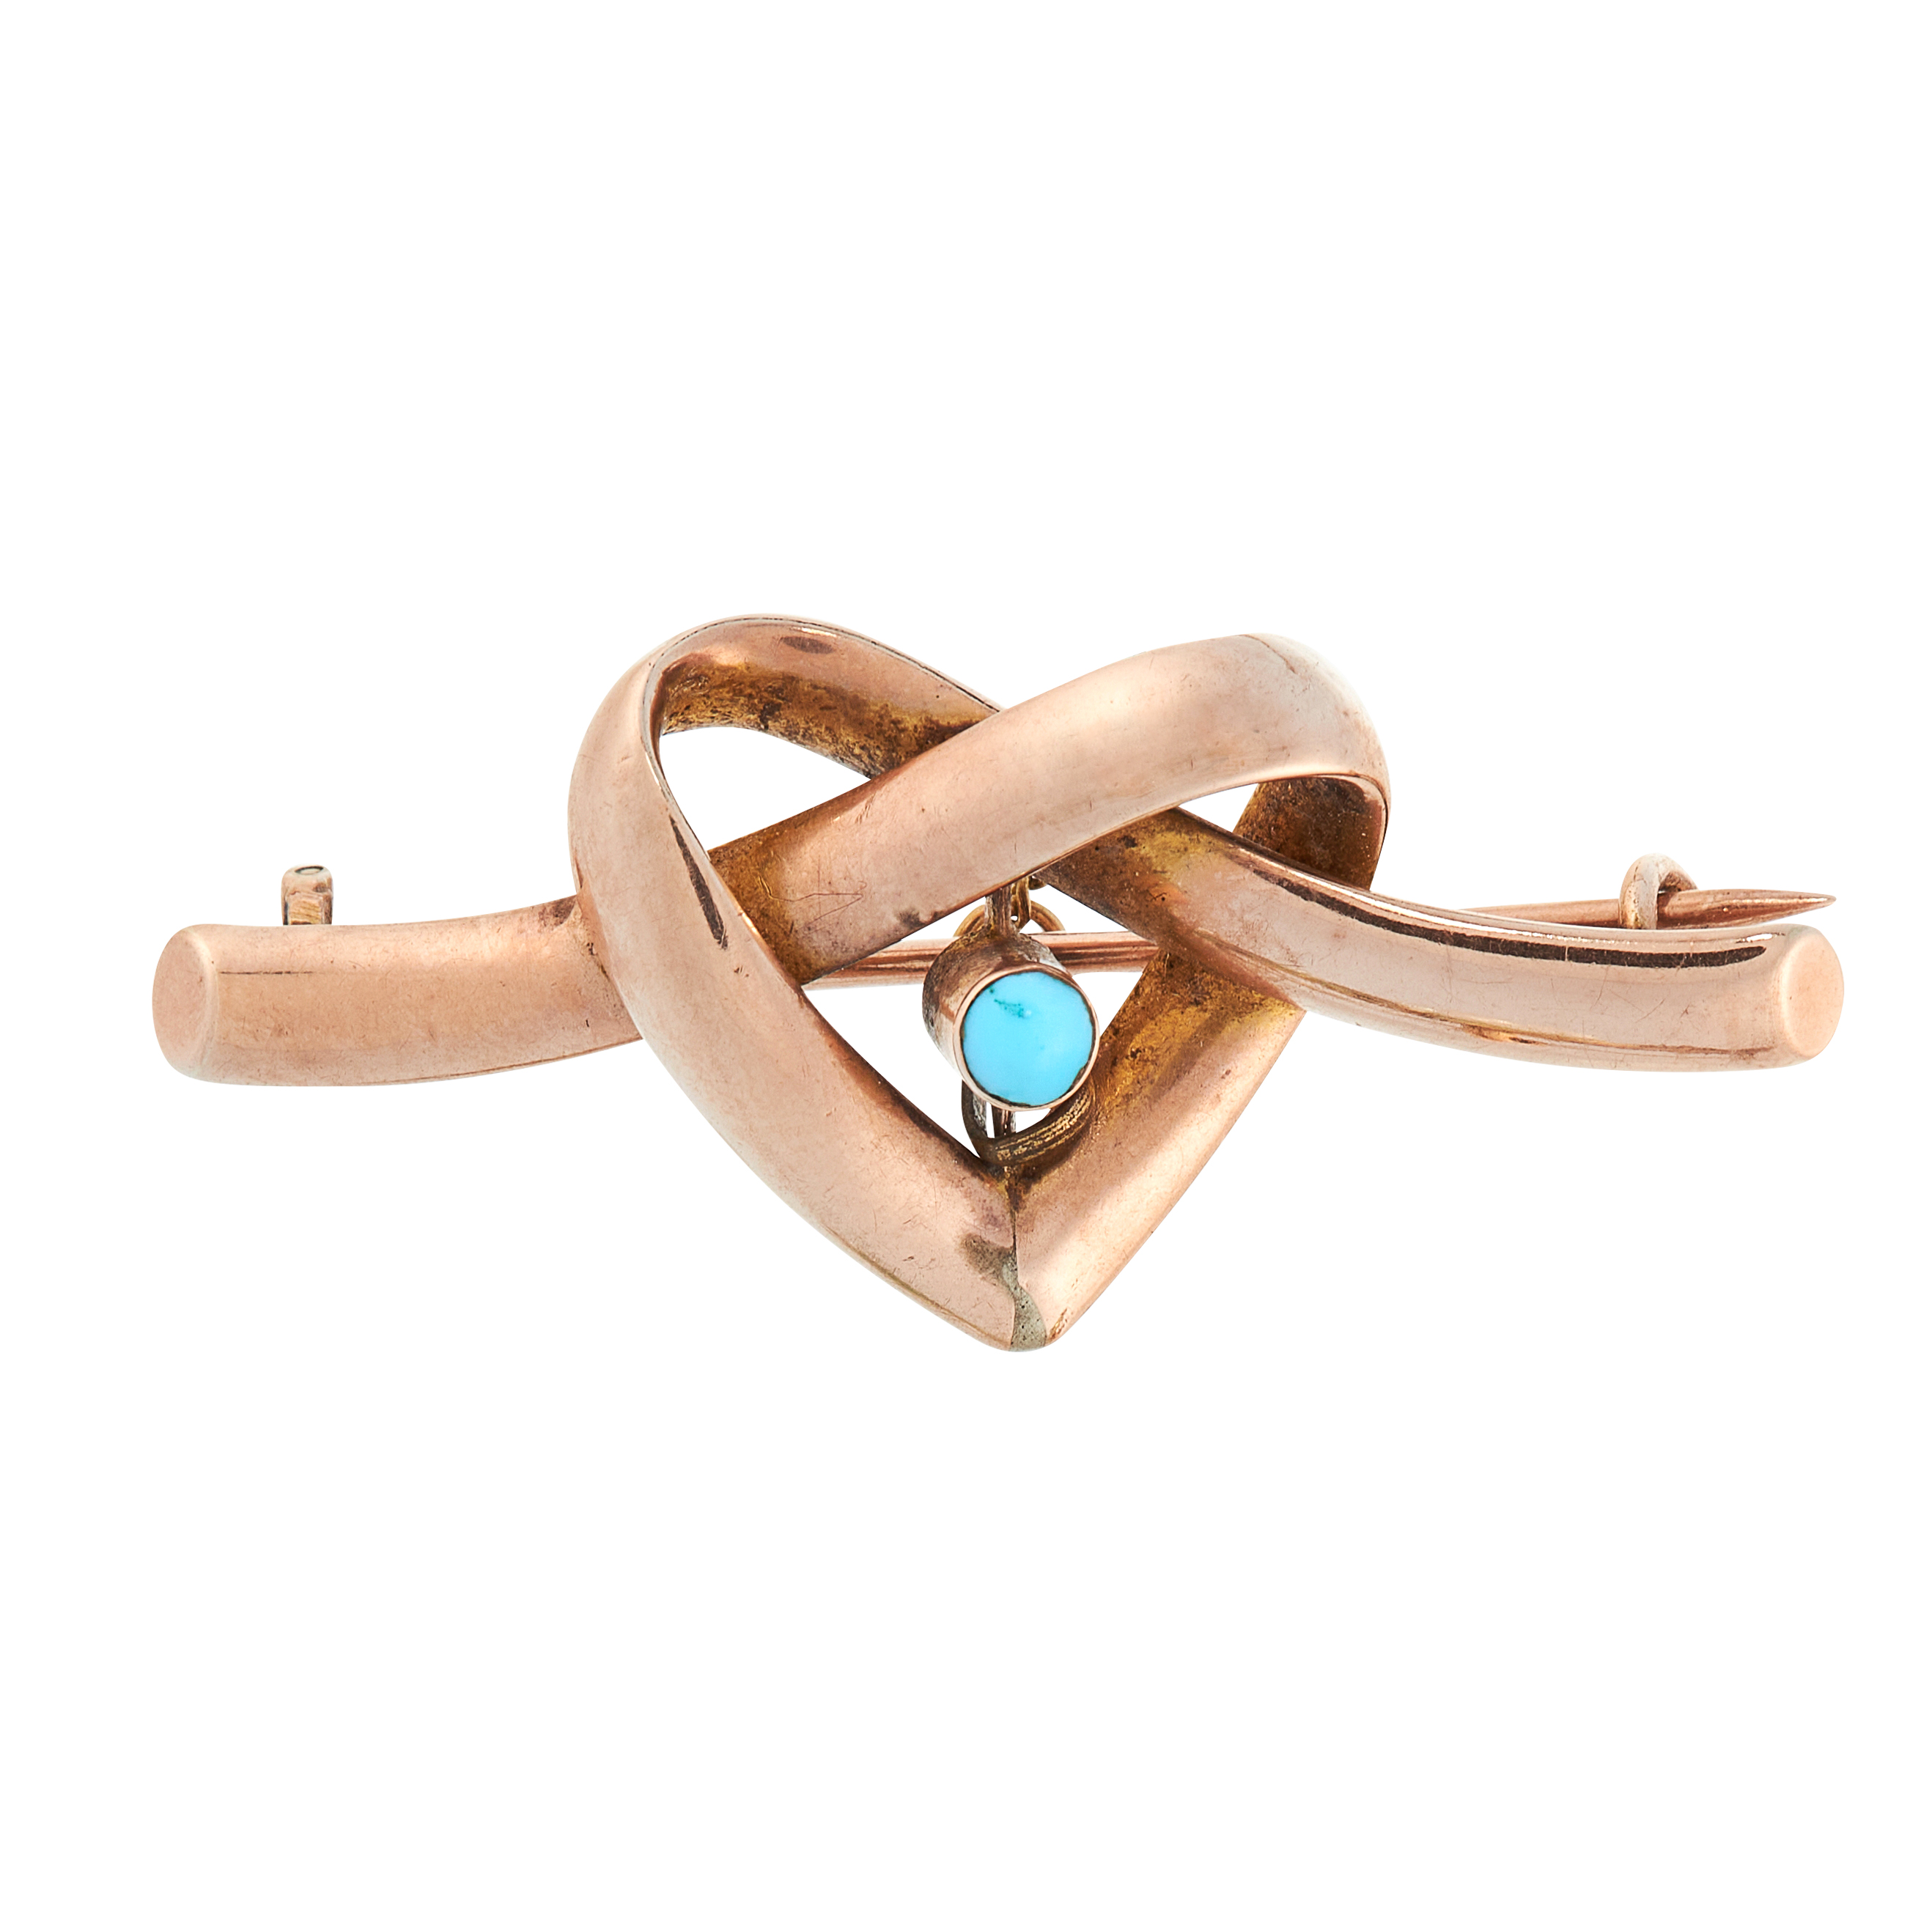 AN ANTIQUE VICTORIAN TURQUOISE HEART BROOCH in 9ct yellow gold, comprising of a cabochon turquoise